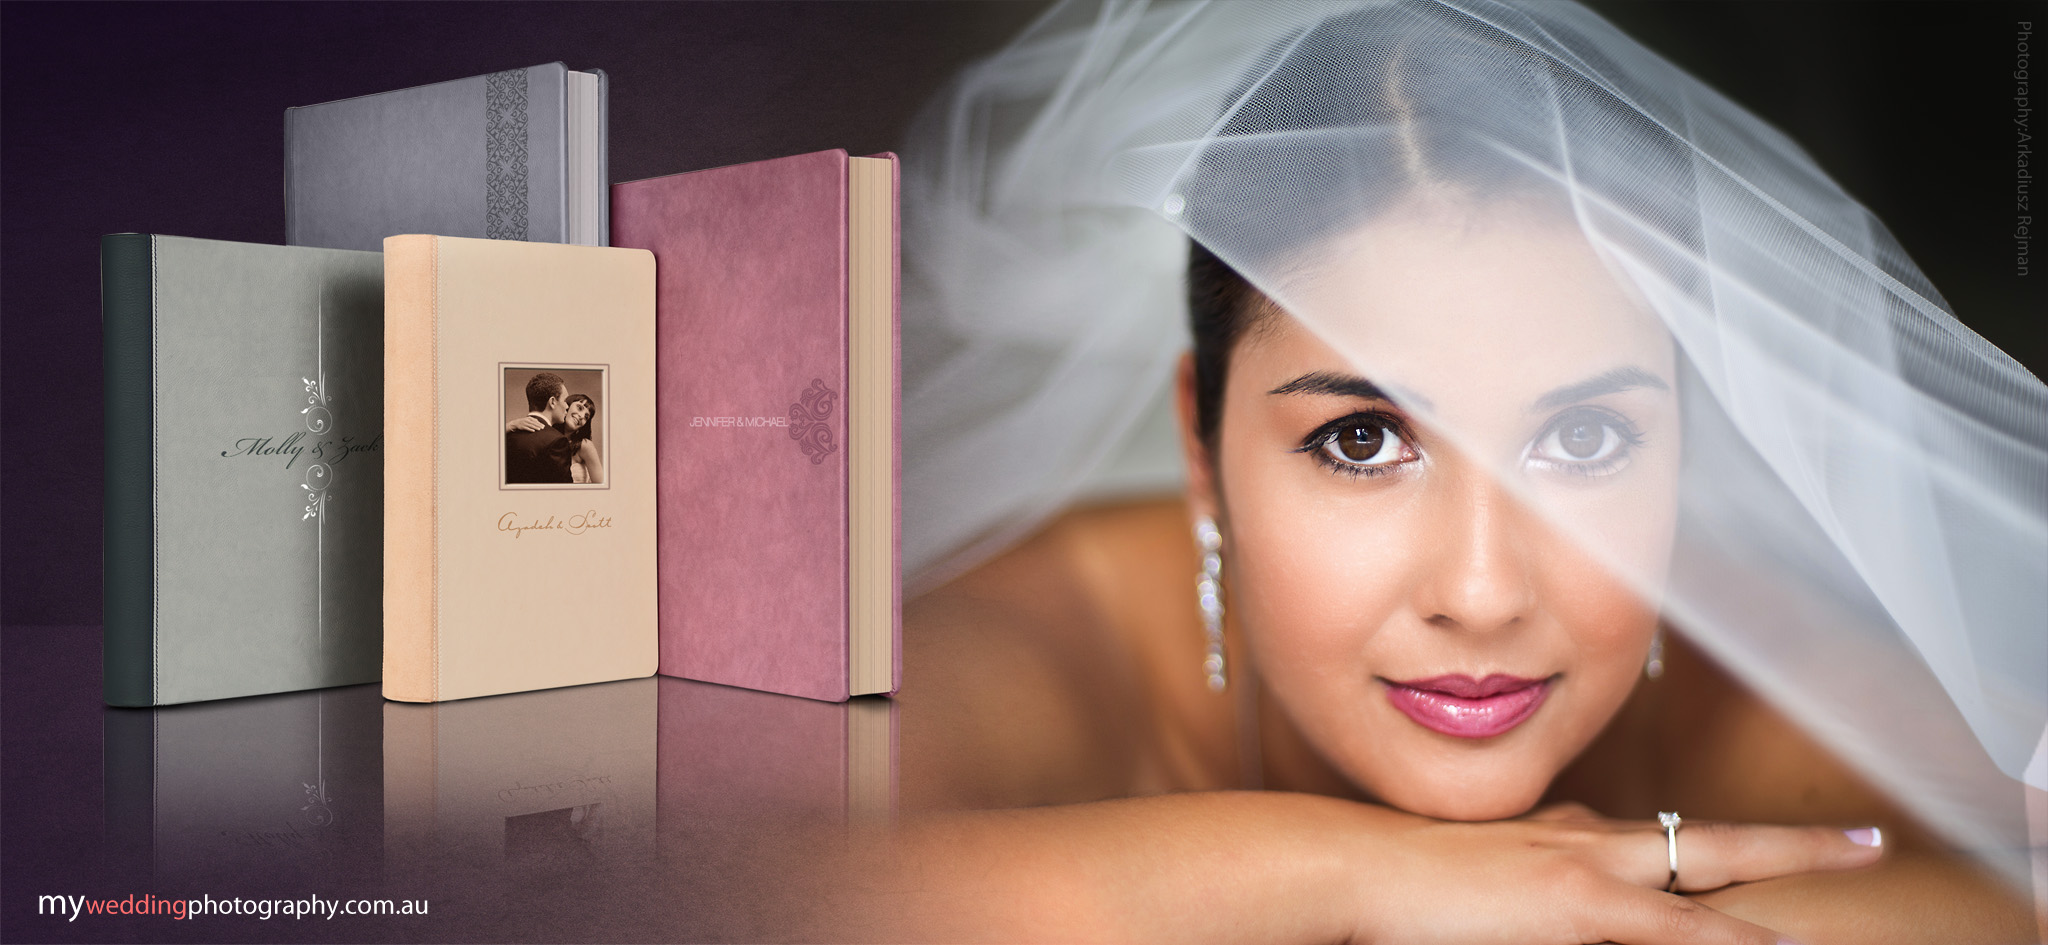 Contemporary and luxourious wedding album range